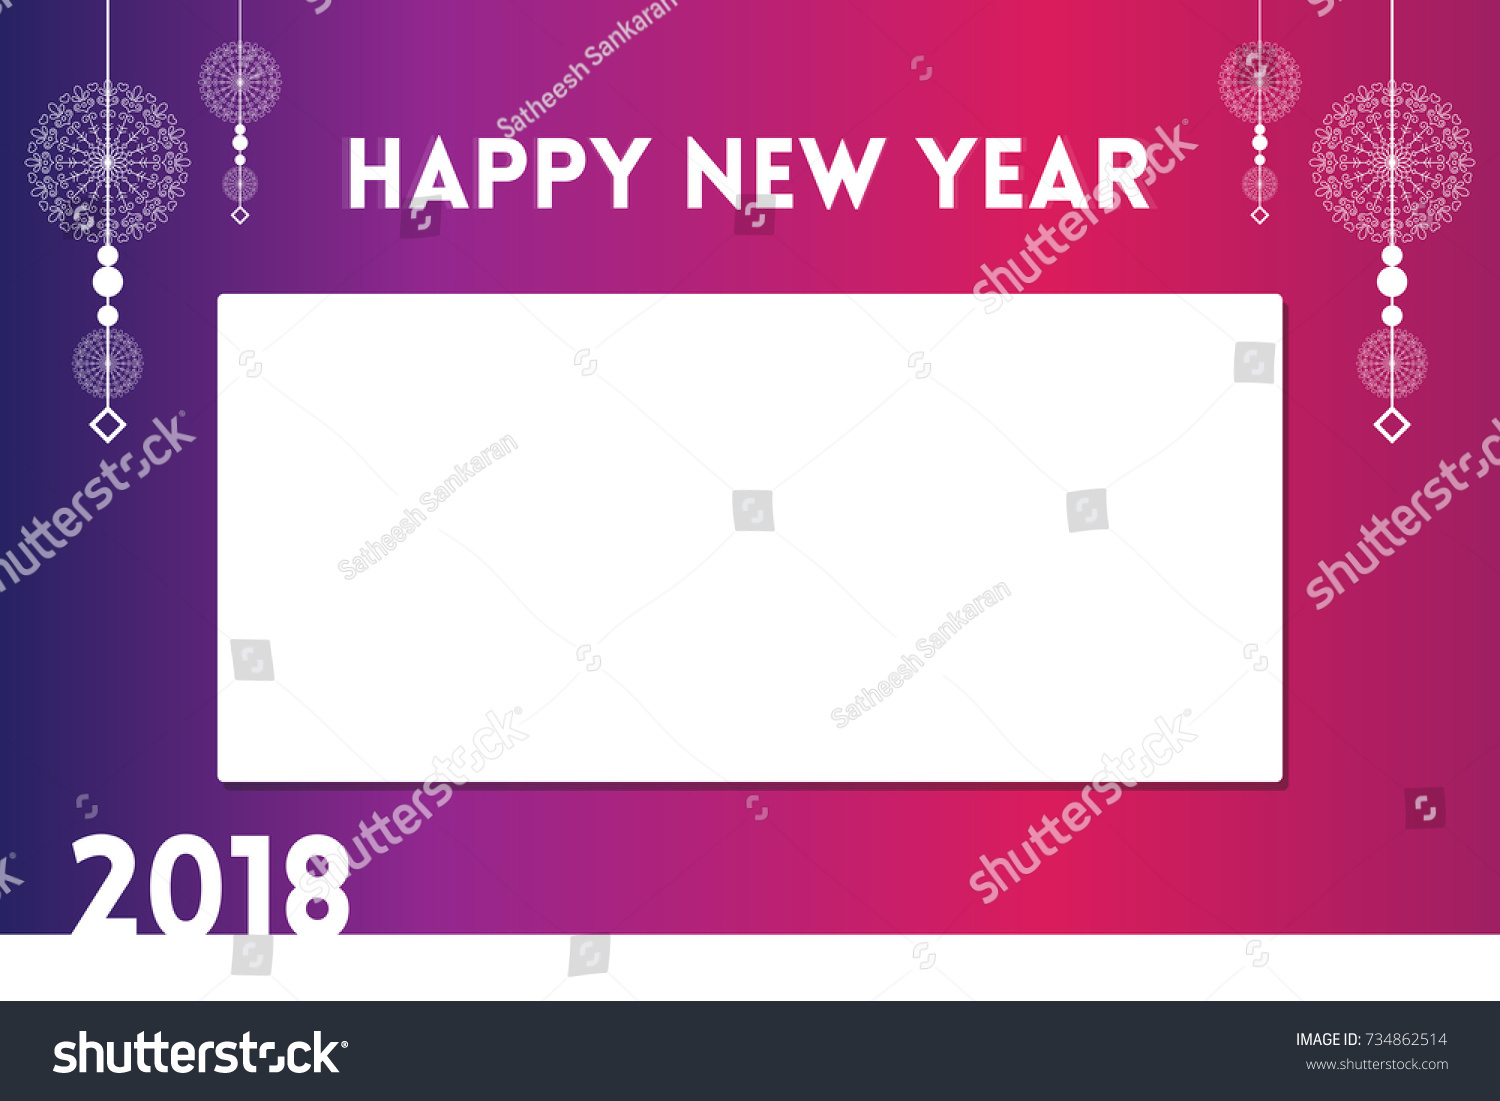 Creative elegant happy new year greetings stock vector 734862514 creative and elegant happy new year greetings for the year 2018 with place for text kristyandbryce Choice Image